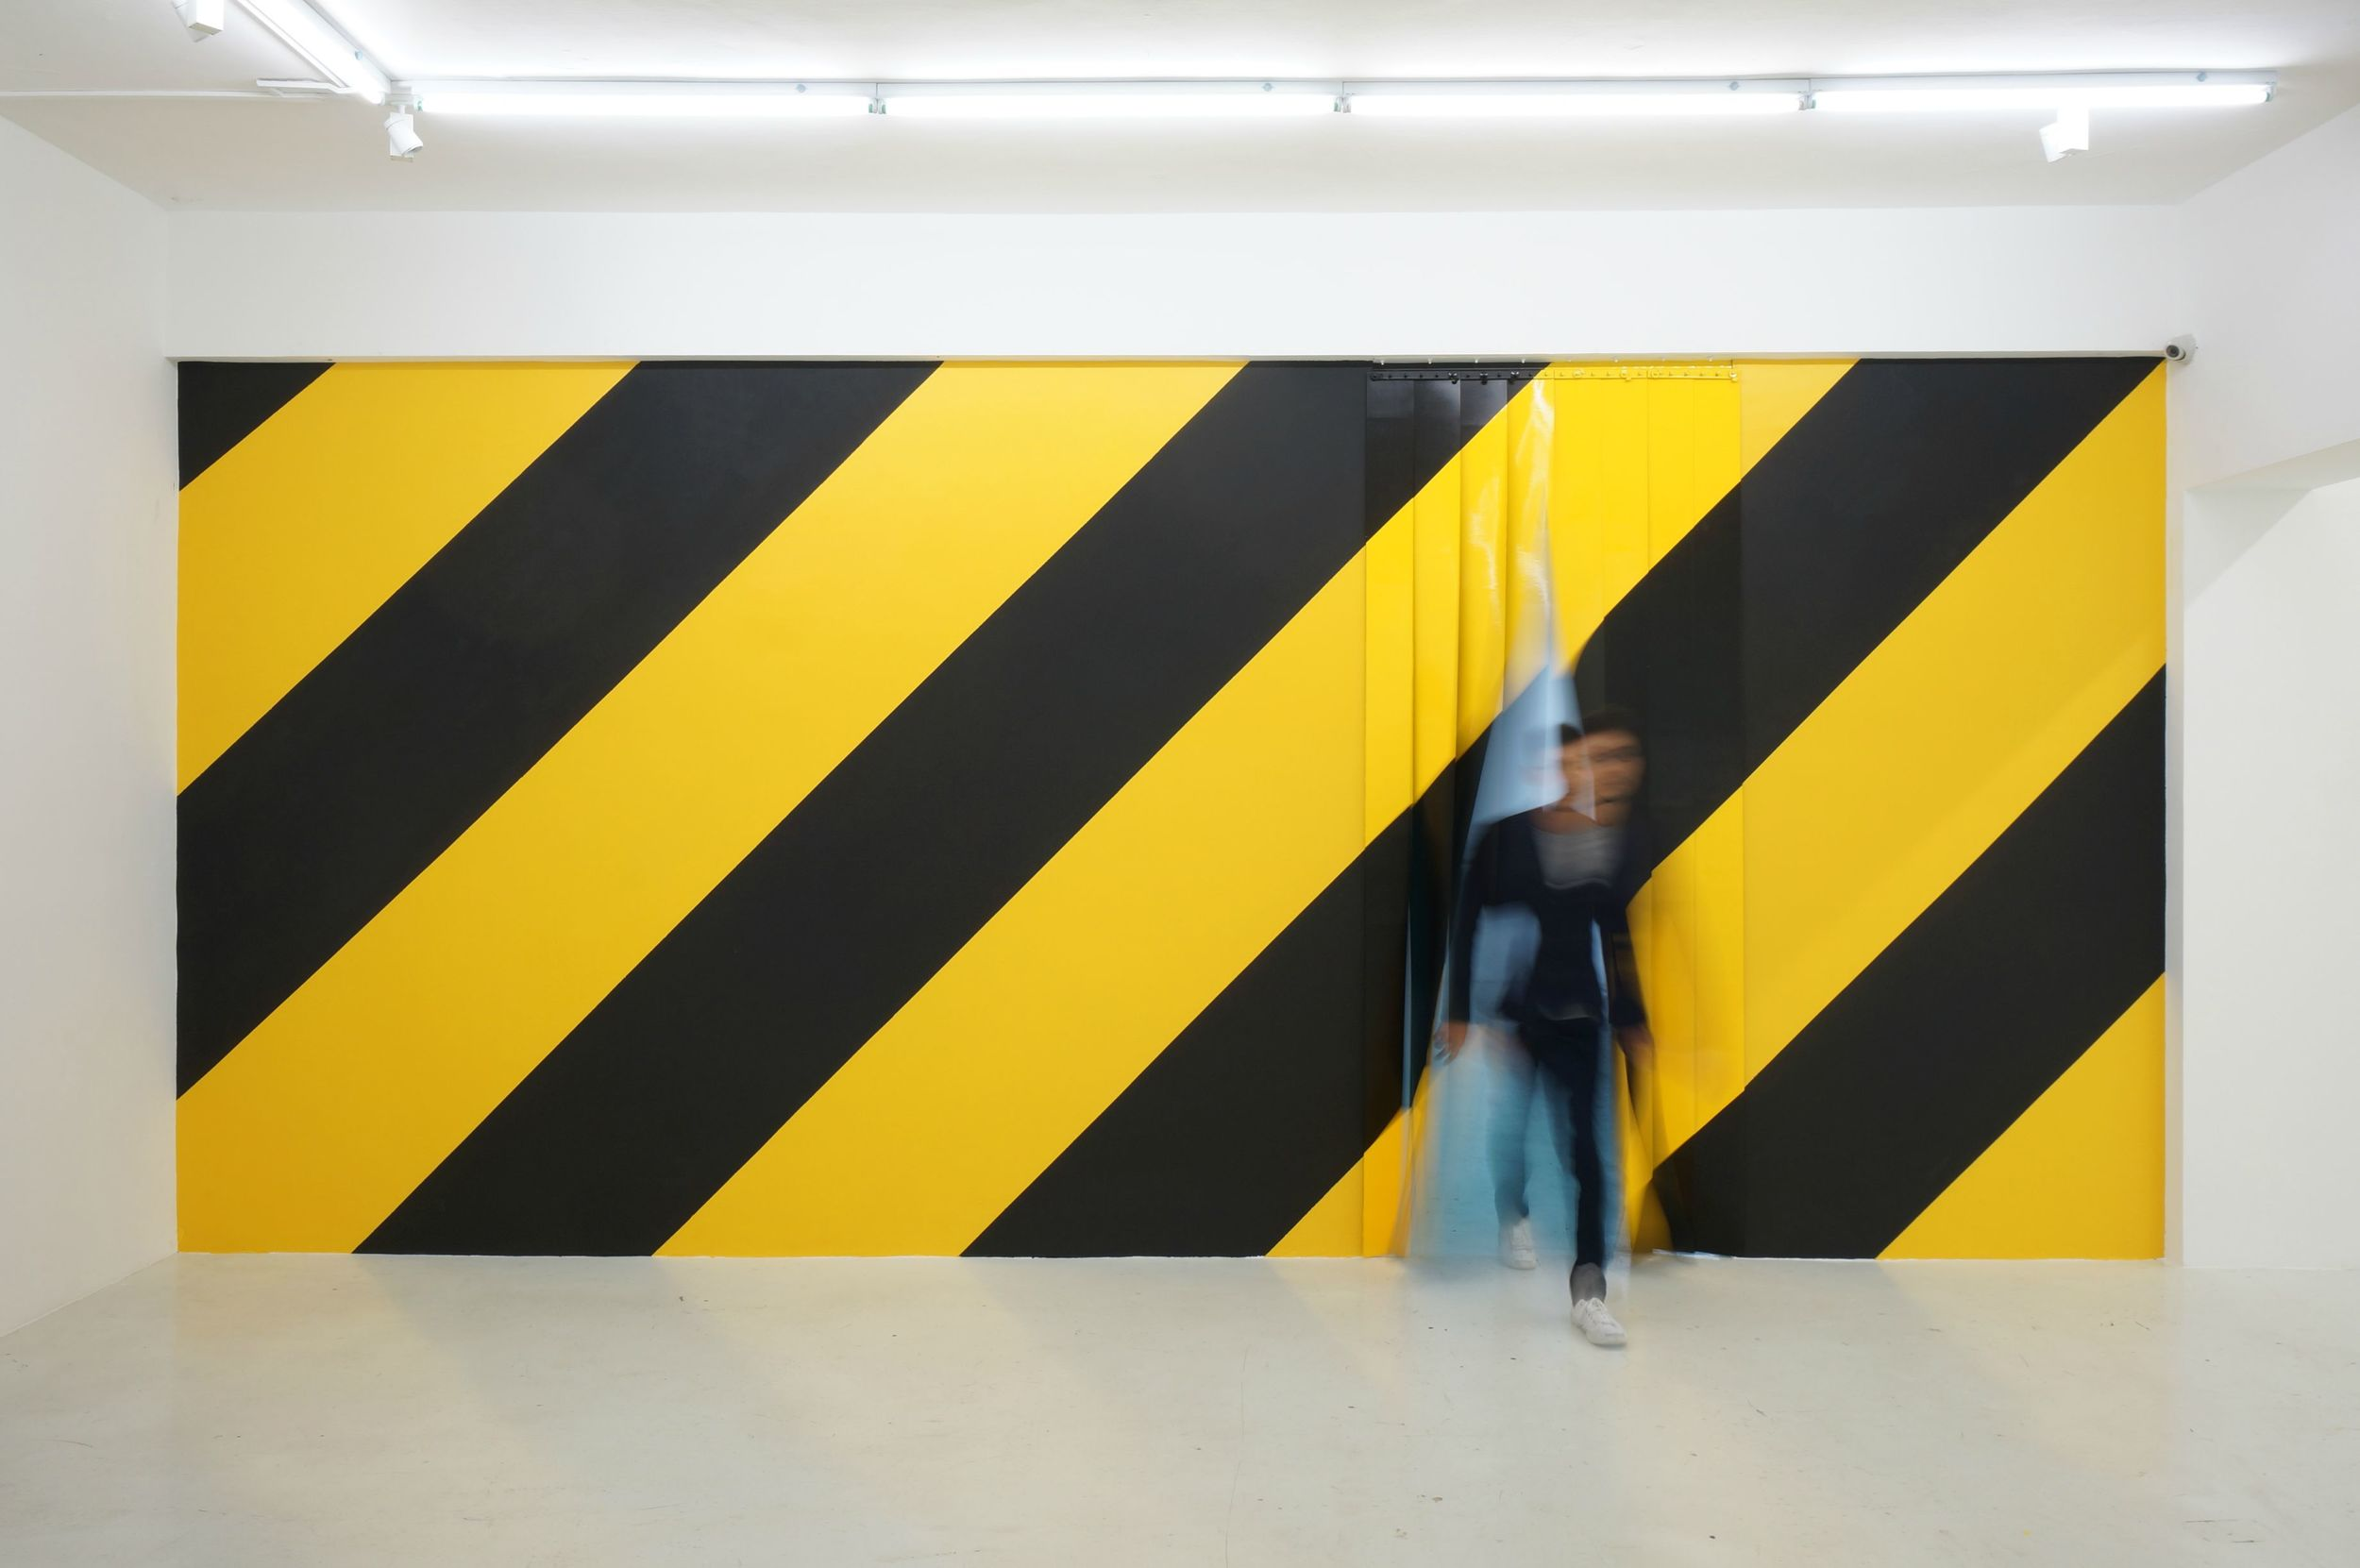 Michael Lee,  Diagonals  (installation view with the artist), 2014.   Emulsion on wall, polyurethane on PVC and enamel on galvanised iron, 294 x 650 cm.   Yavuz Fine Art, Singapore. Photo by Ken Cheong.